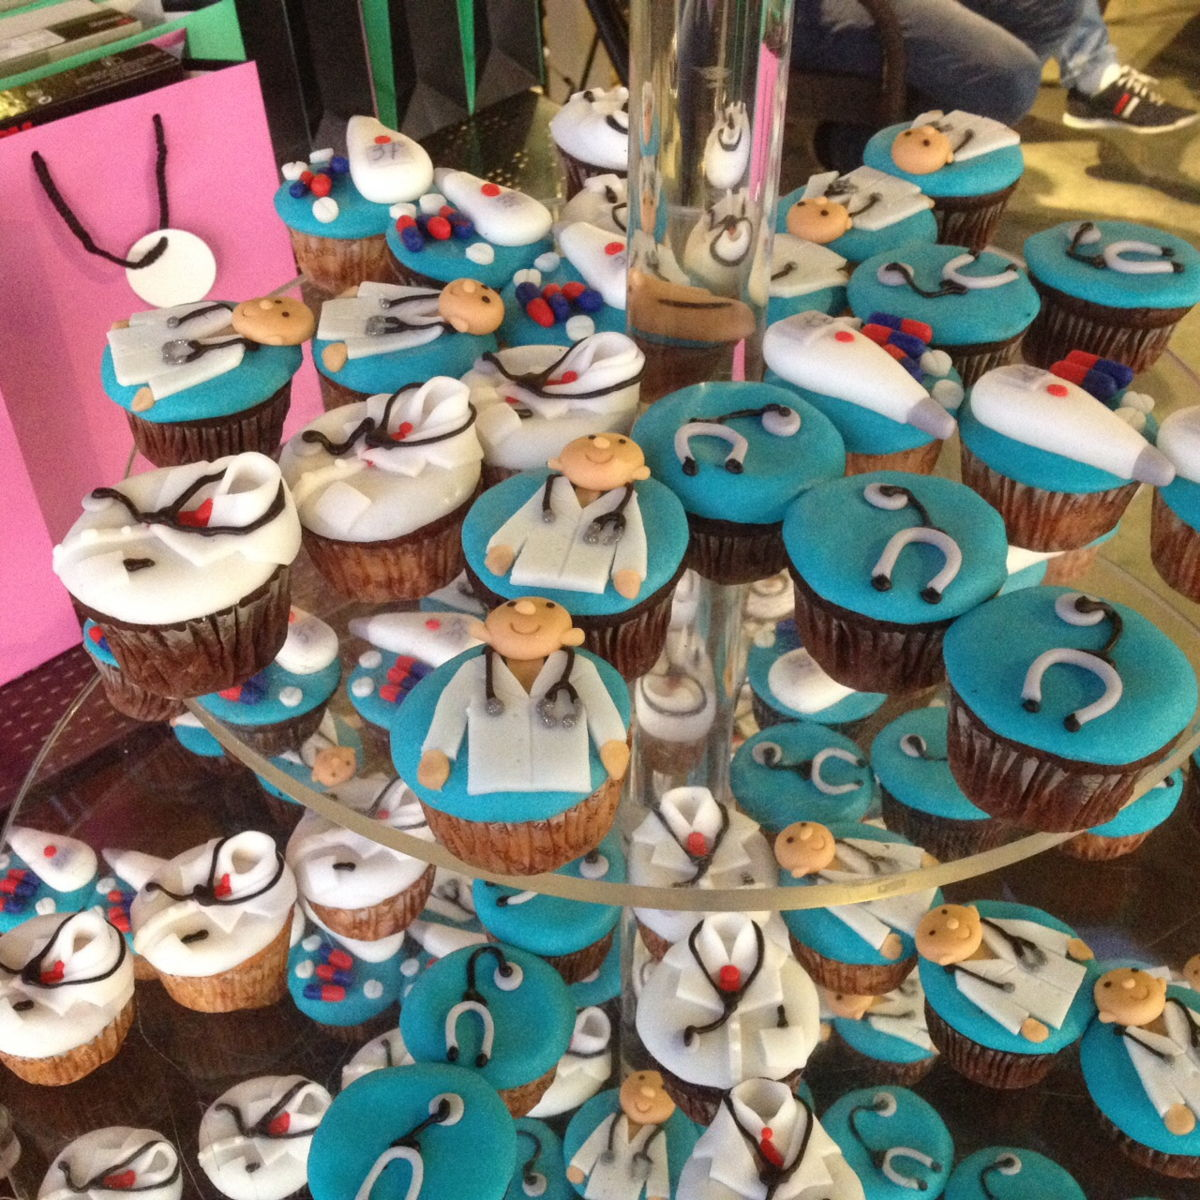 The Doctors' Cupcakes